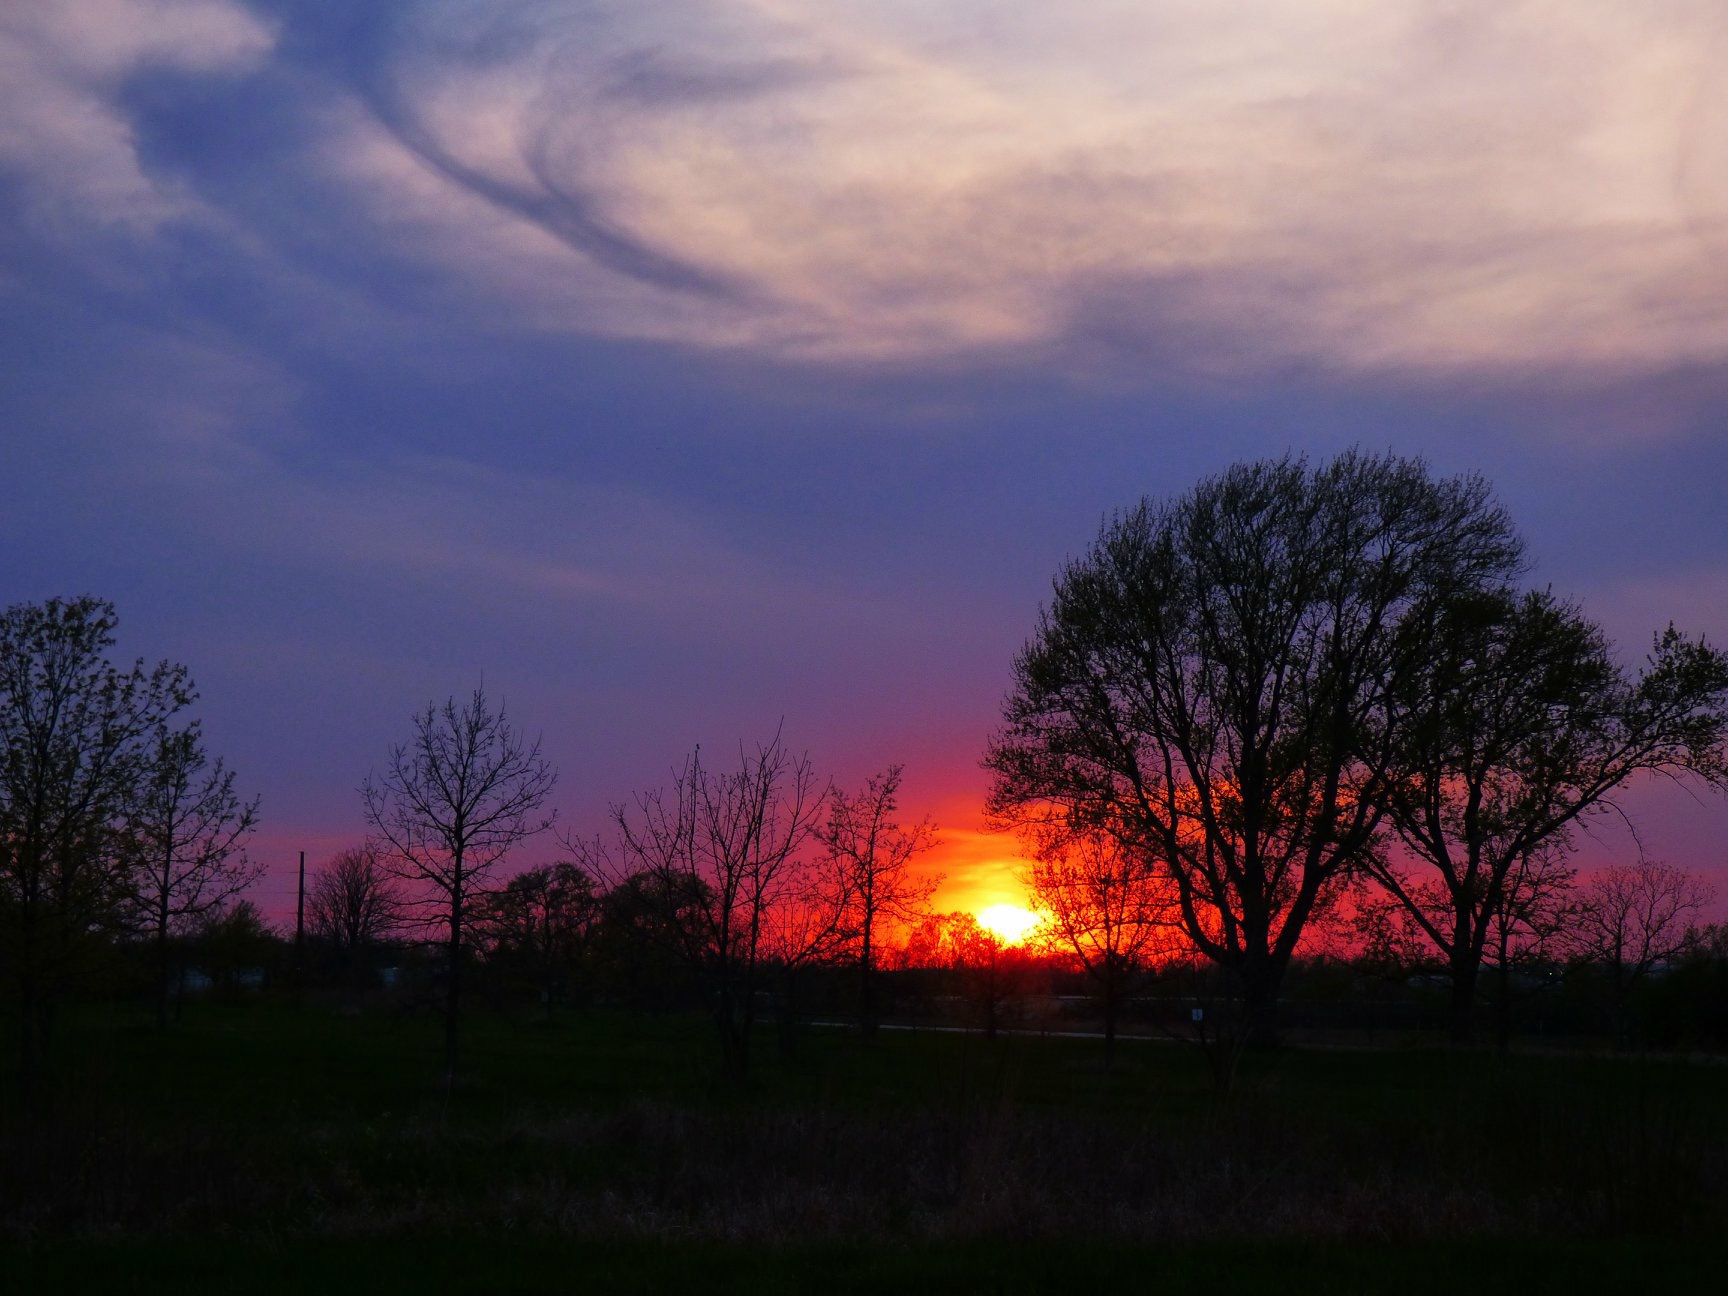 (1/3) A candle-flame-like sunset pierces the periwinkle expanse. Photo: Amy Scroggins, nature, sunset, landscape, tree, sun, sky